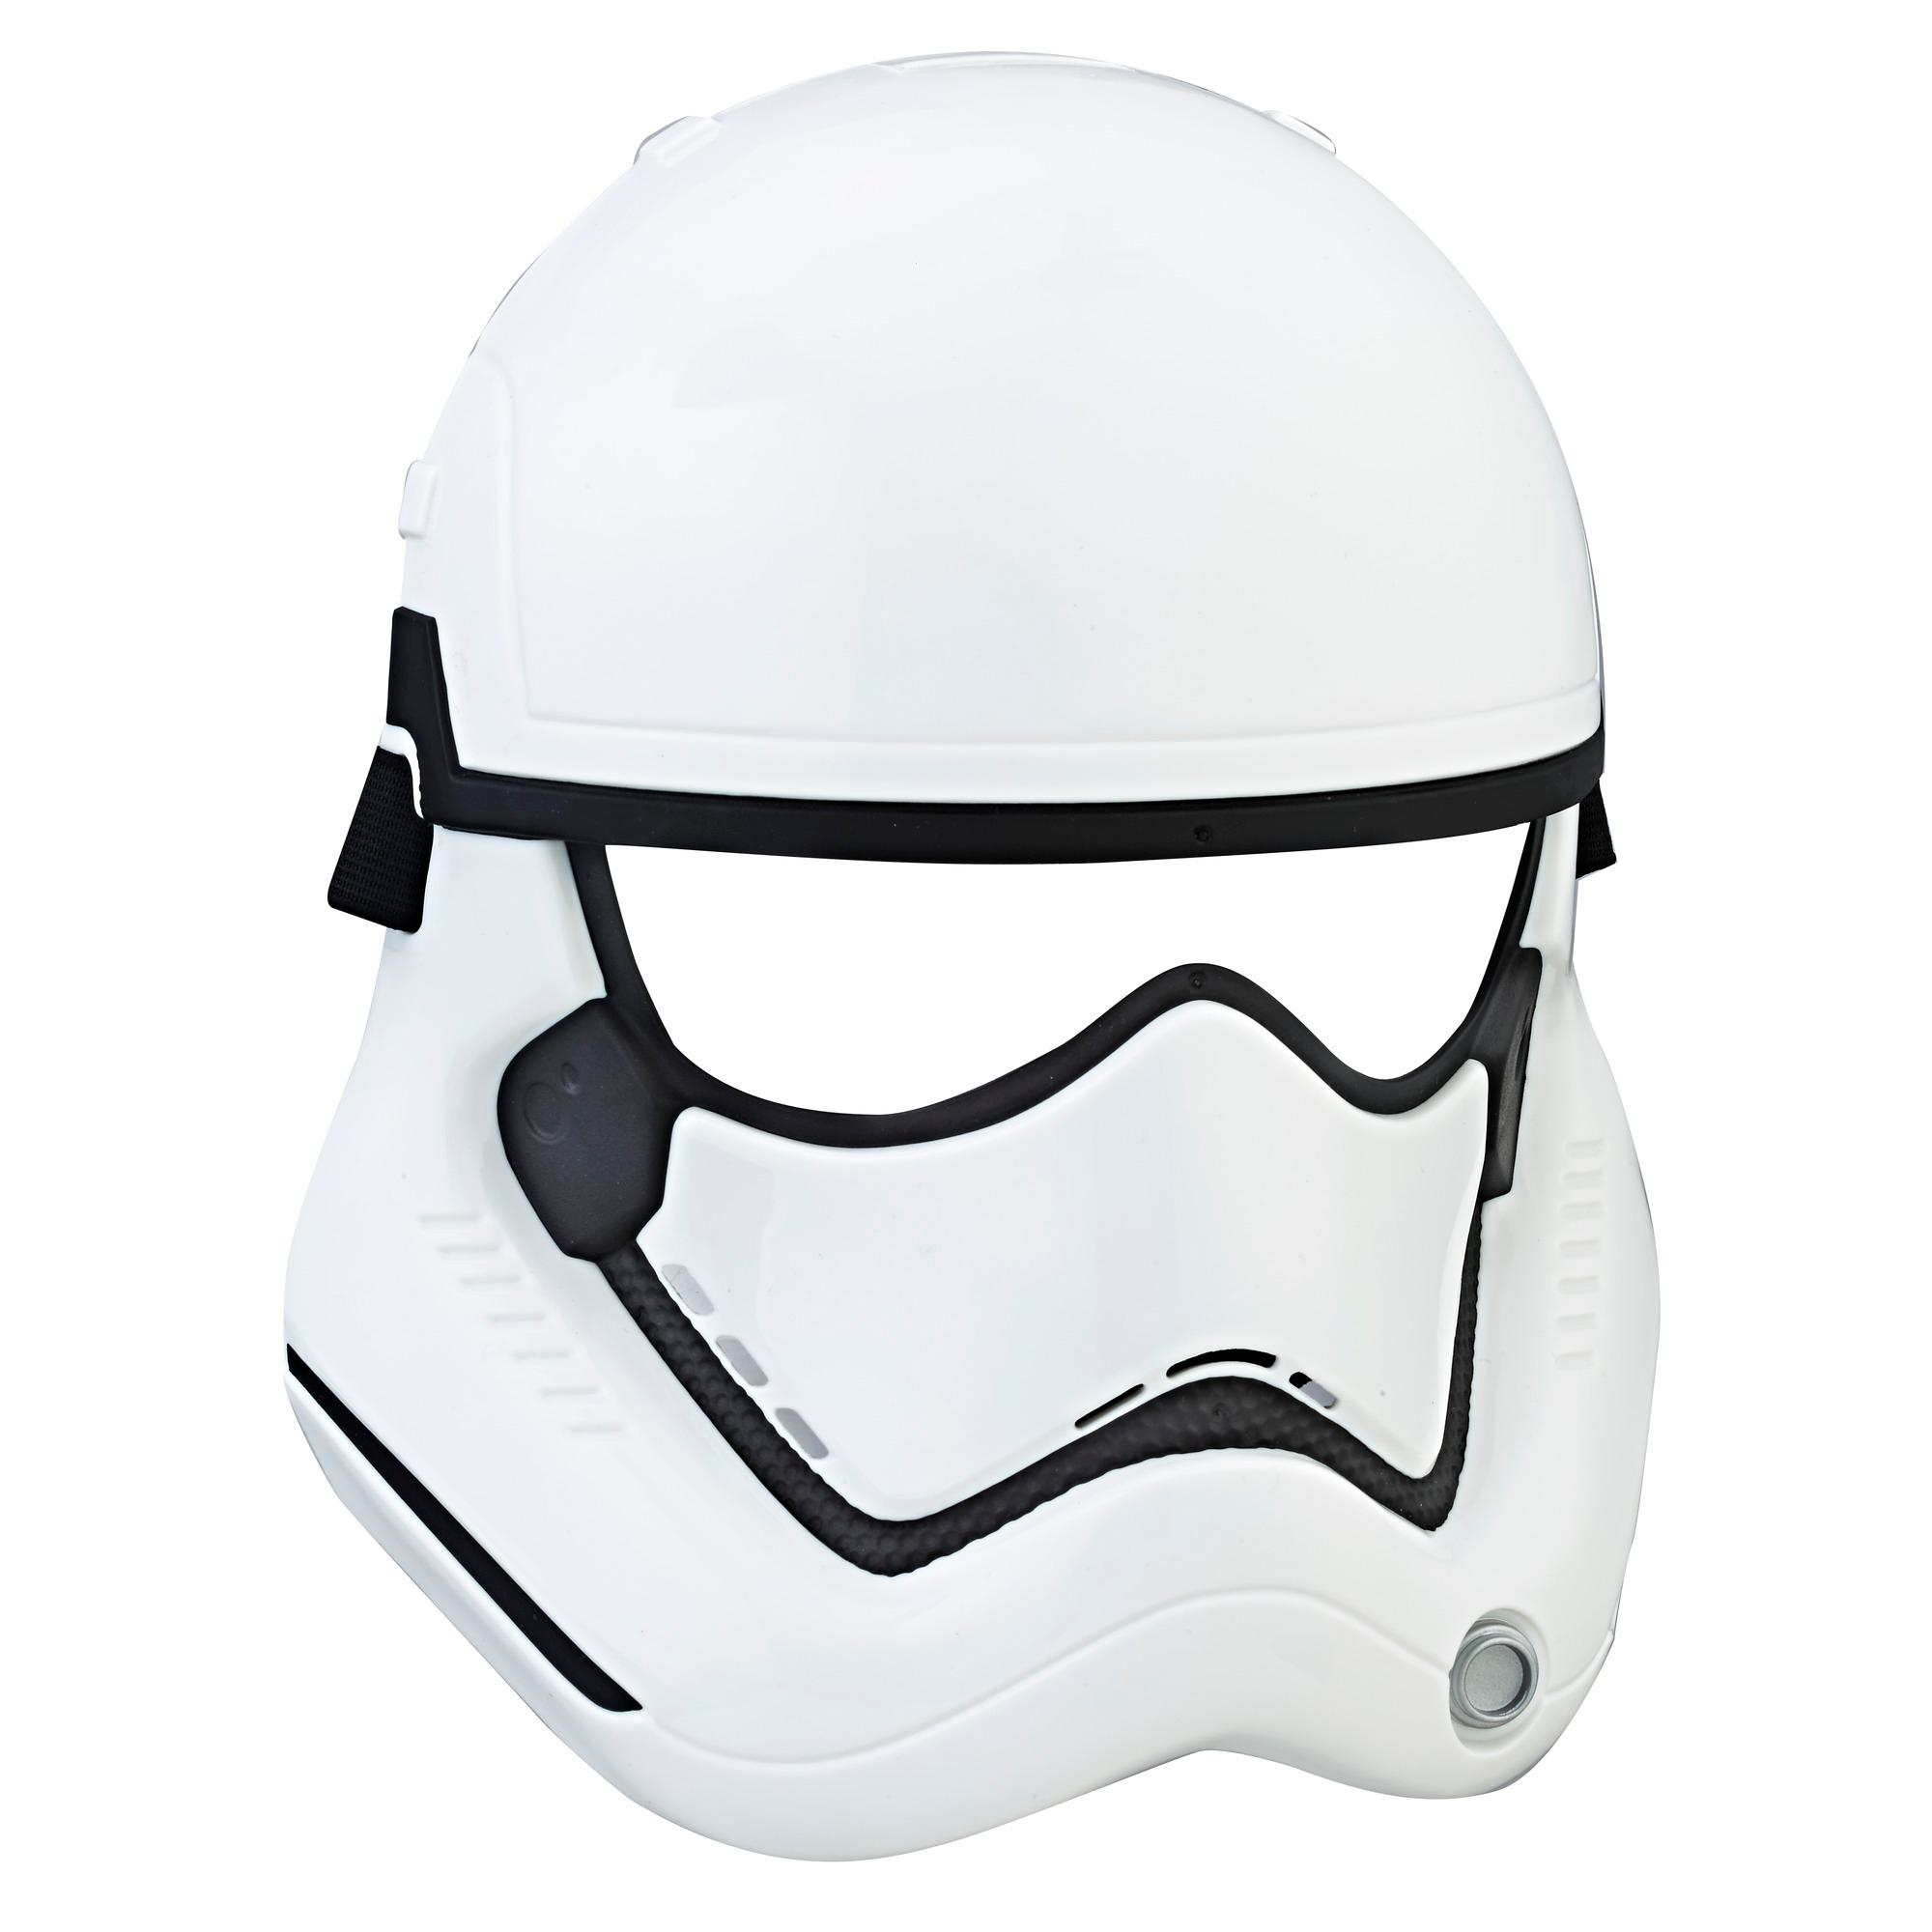 STAR WARS EPISODIO 8 SURTIDO MÁSCARAS EPISODIO 8 FIRST ORDER STORM TROOPER